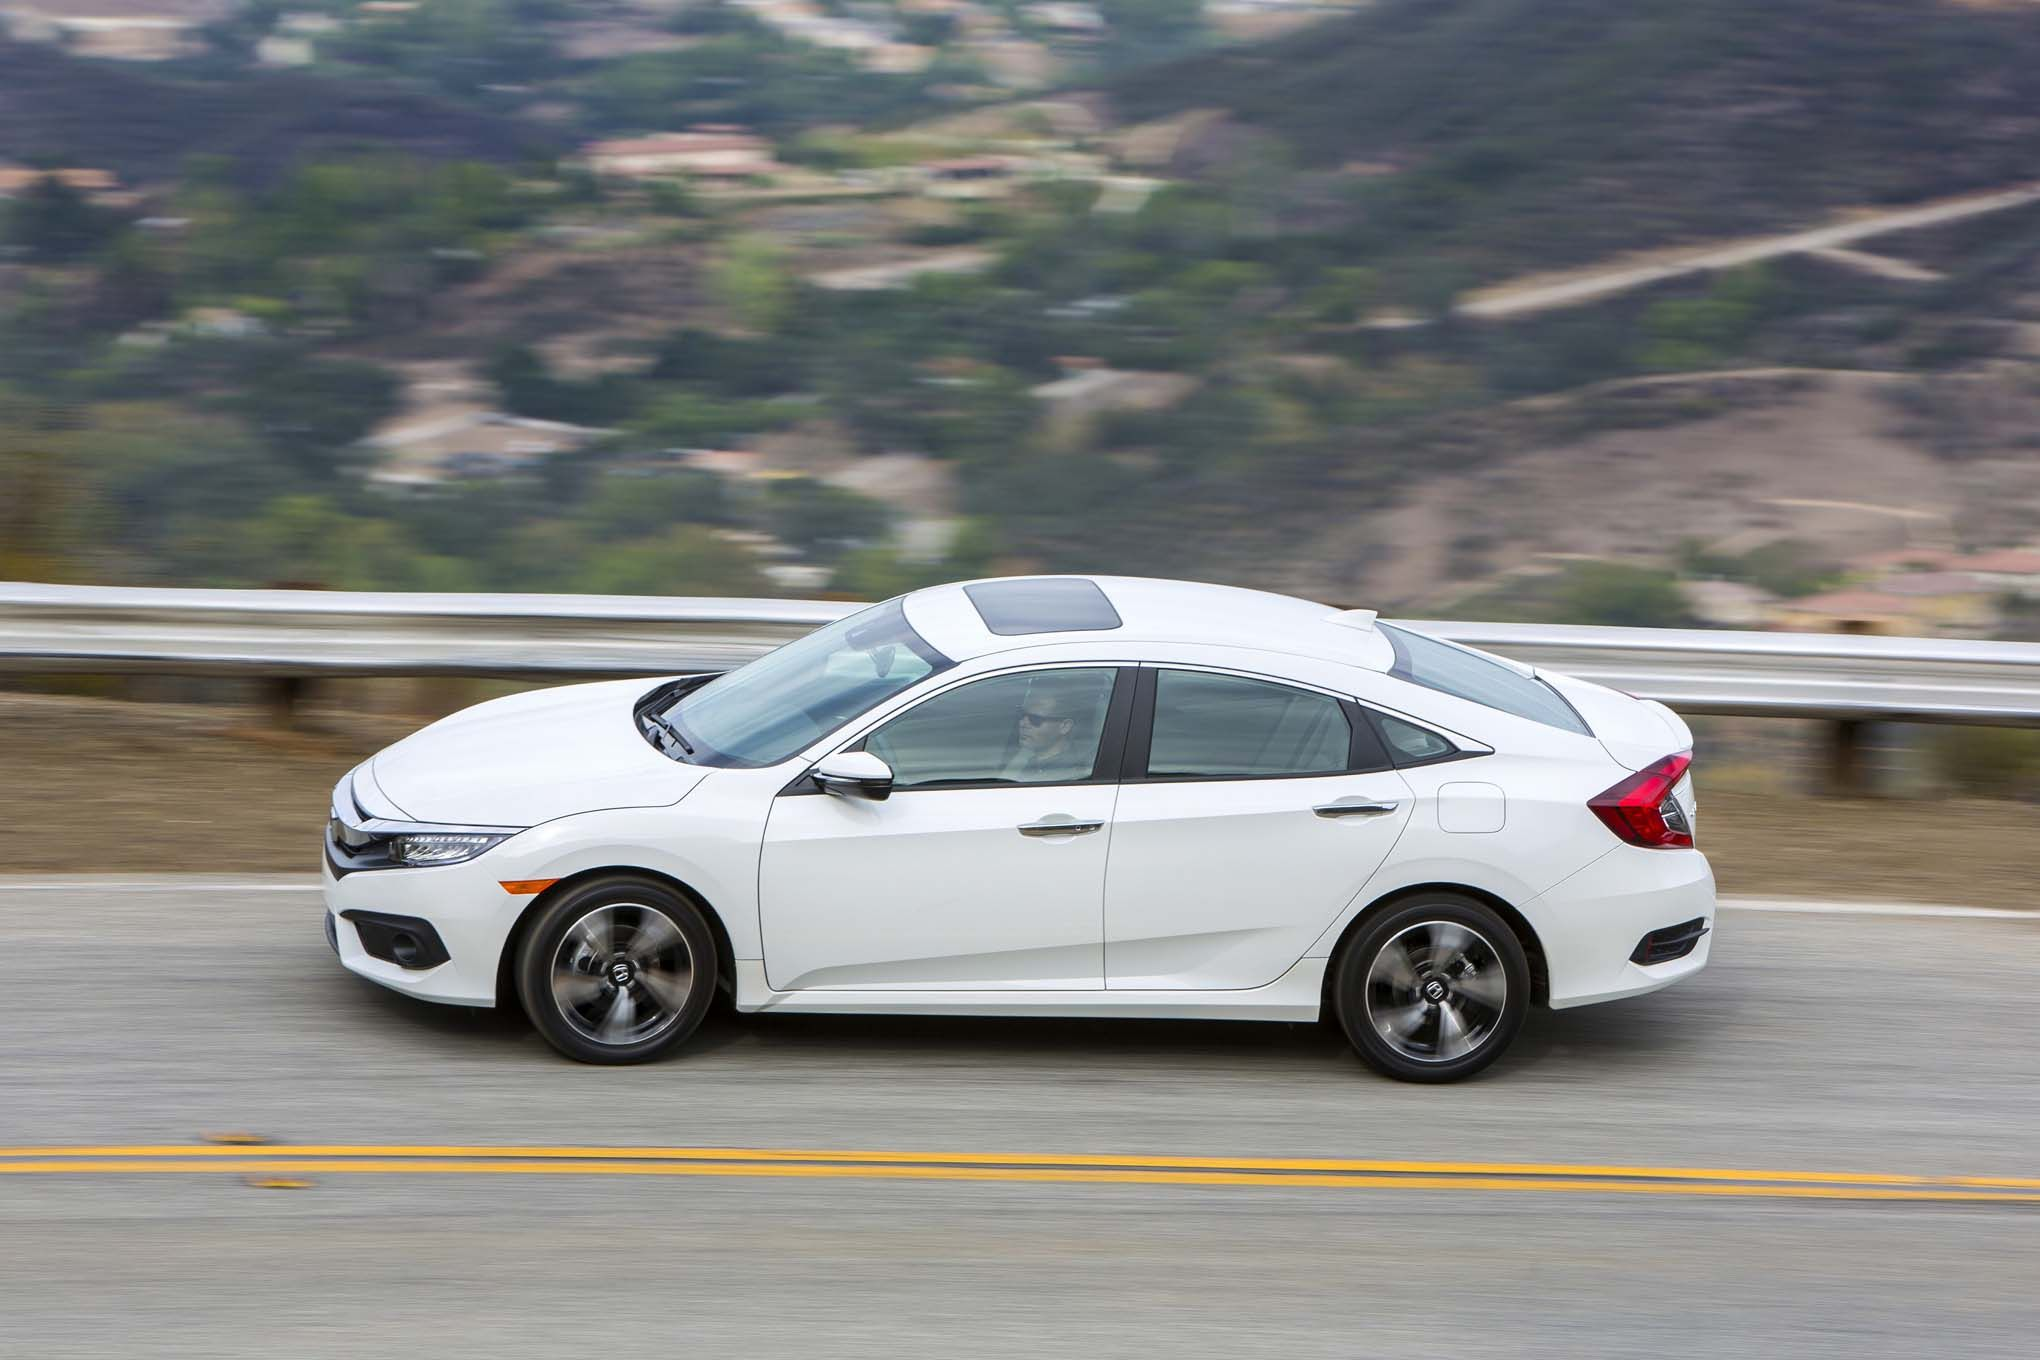 2017 Honda Civic Lx Sedan Https Twitter Yuningsih290